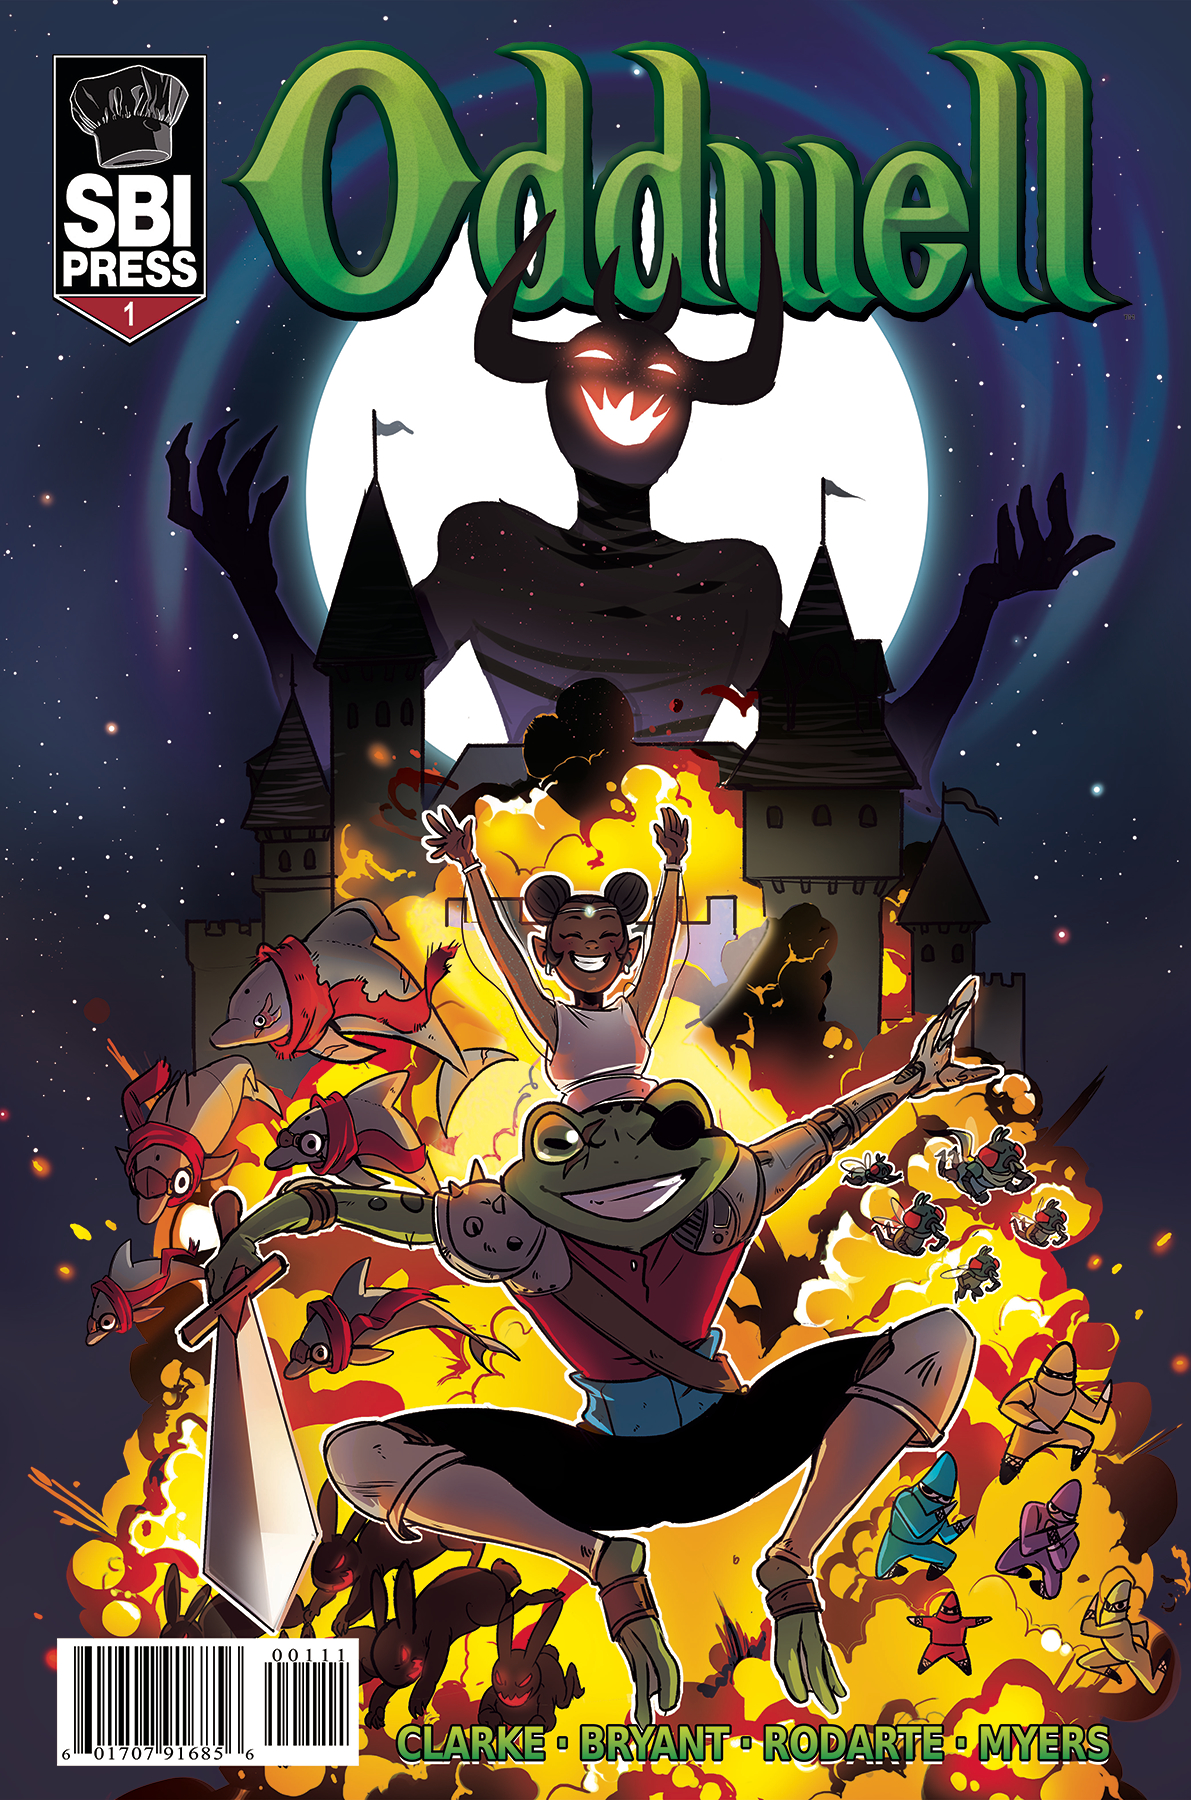 Image result for oddwell #1